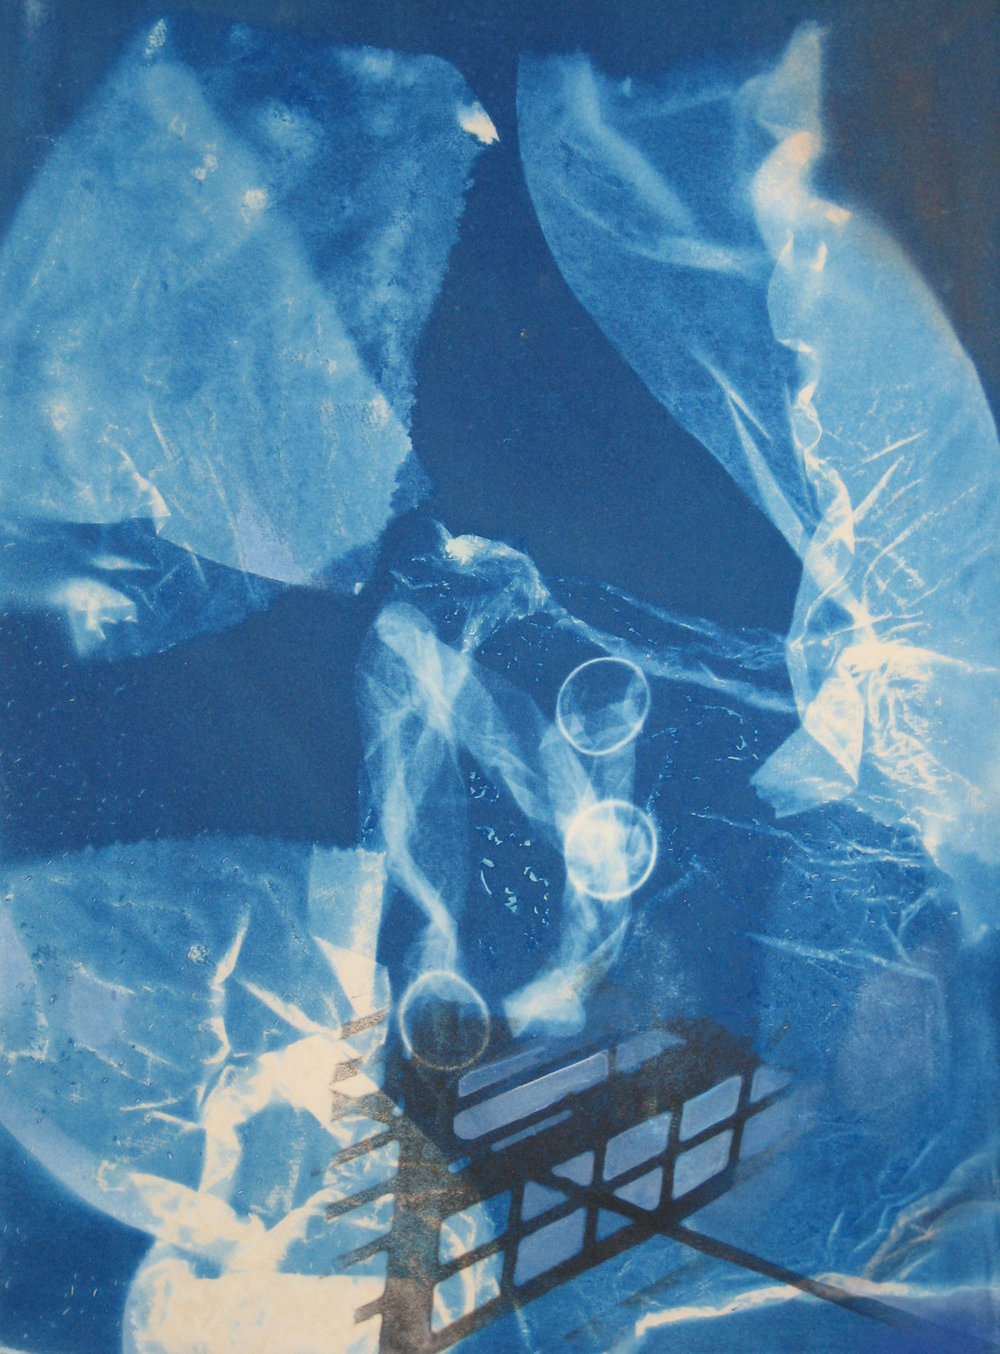 bed triptych , 2008, cyanotype, xerox transfer, watercolor, gesso, ink on paper, each part 20 x 26 inches